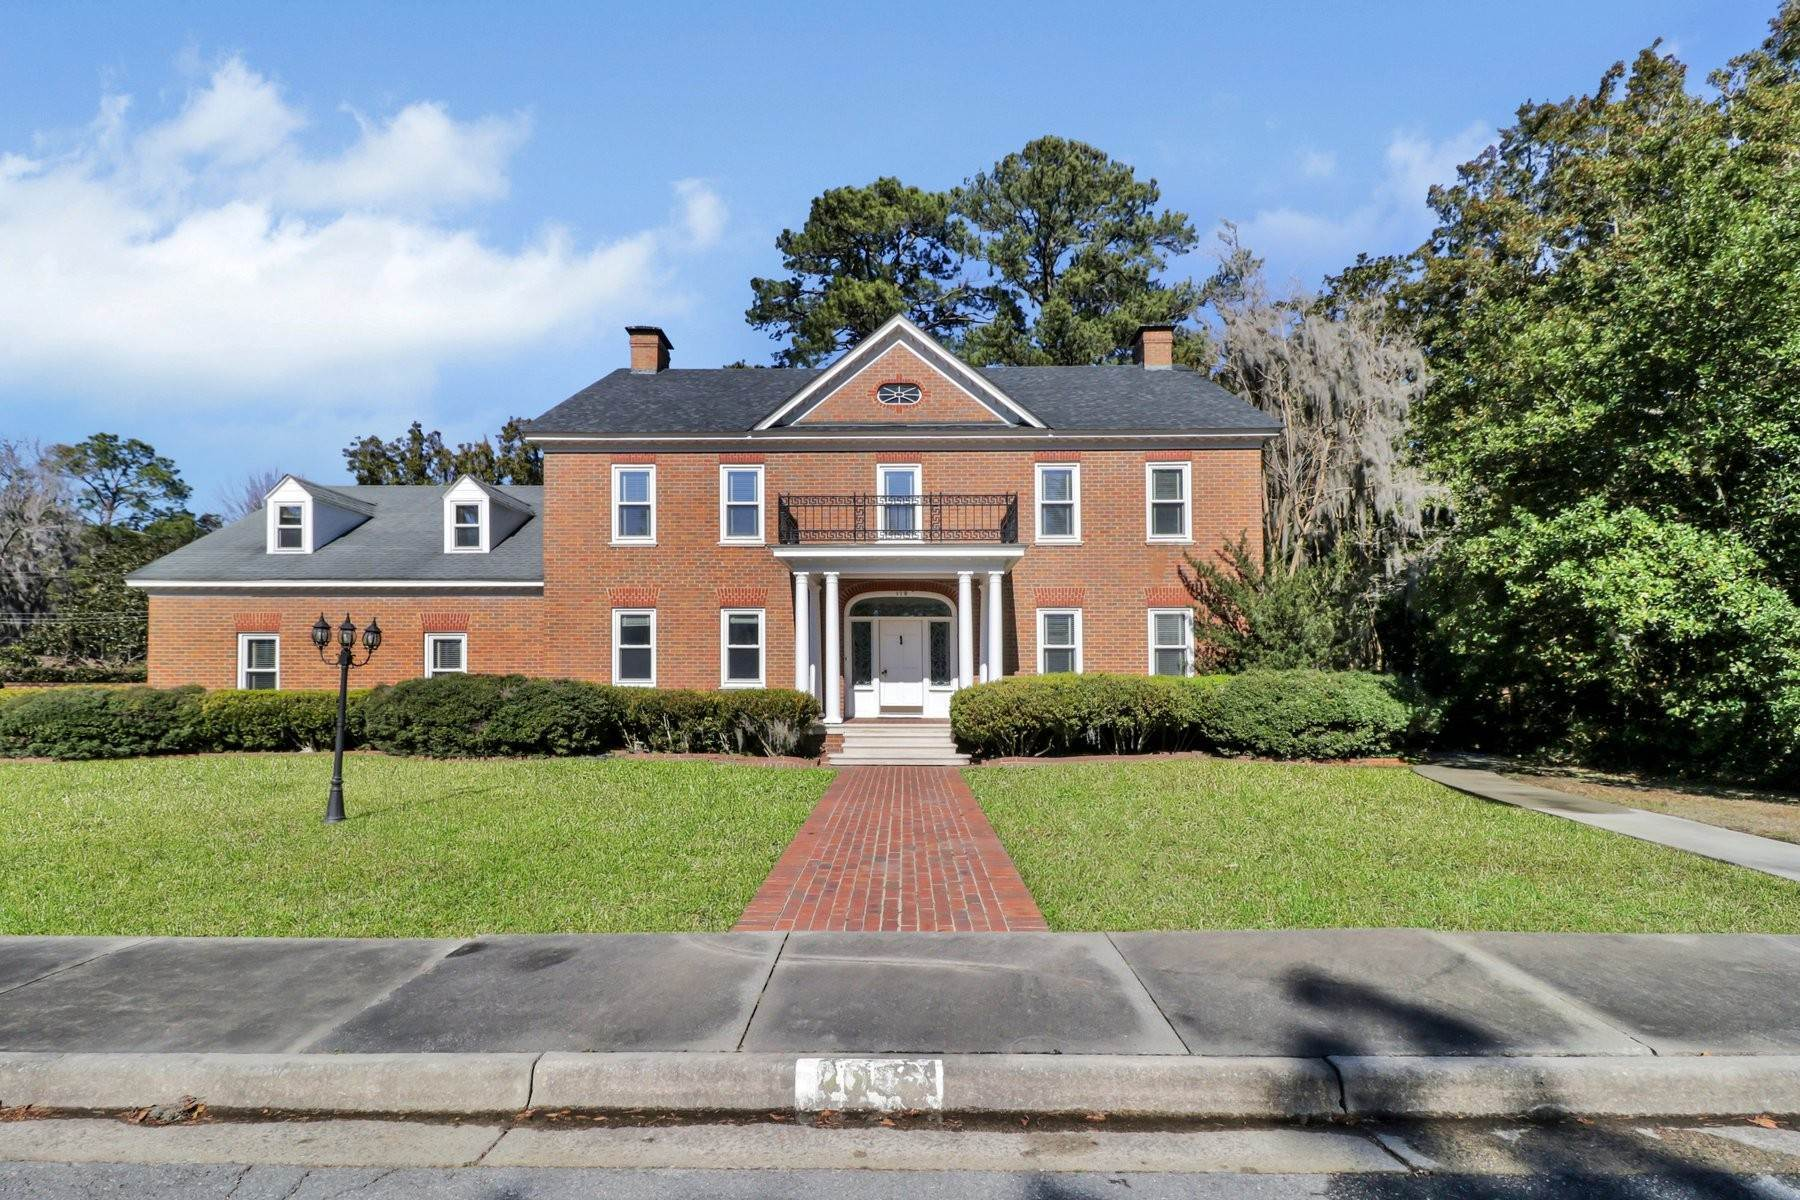 Single Family Homes for Active at Lovely Traditional Brick Home In Habersham Woods 116 McLaws Street Savannah, Georgia 31405 United States